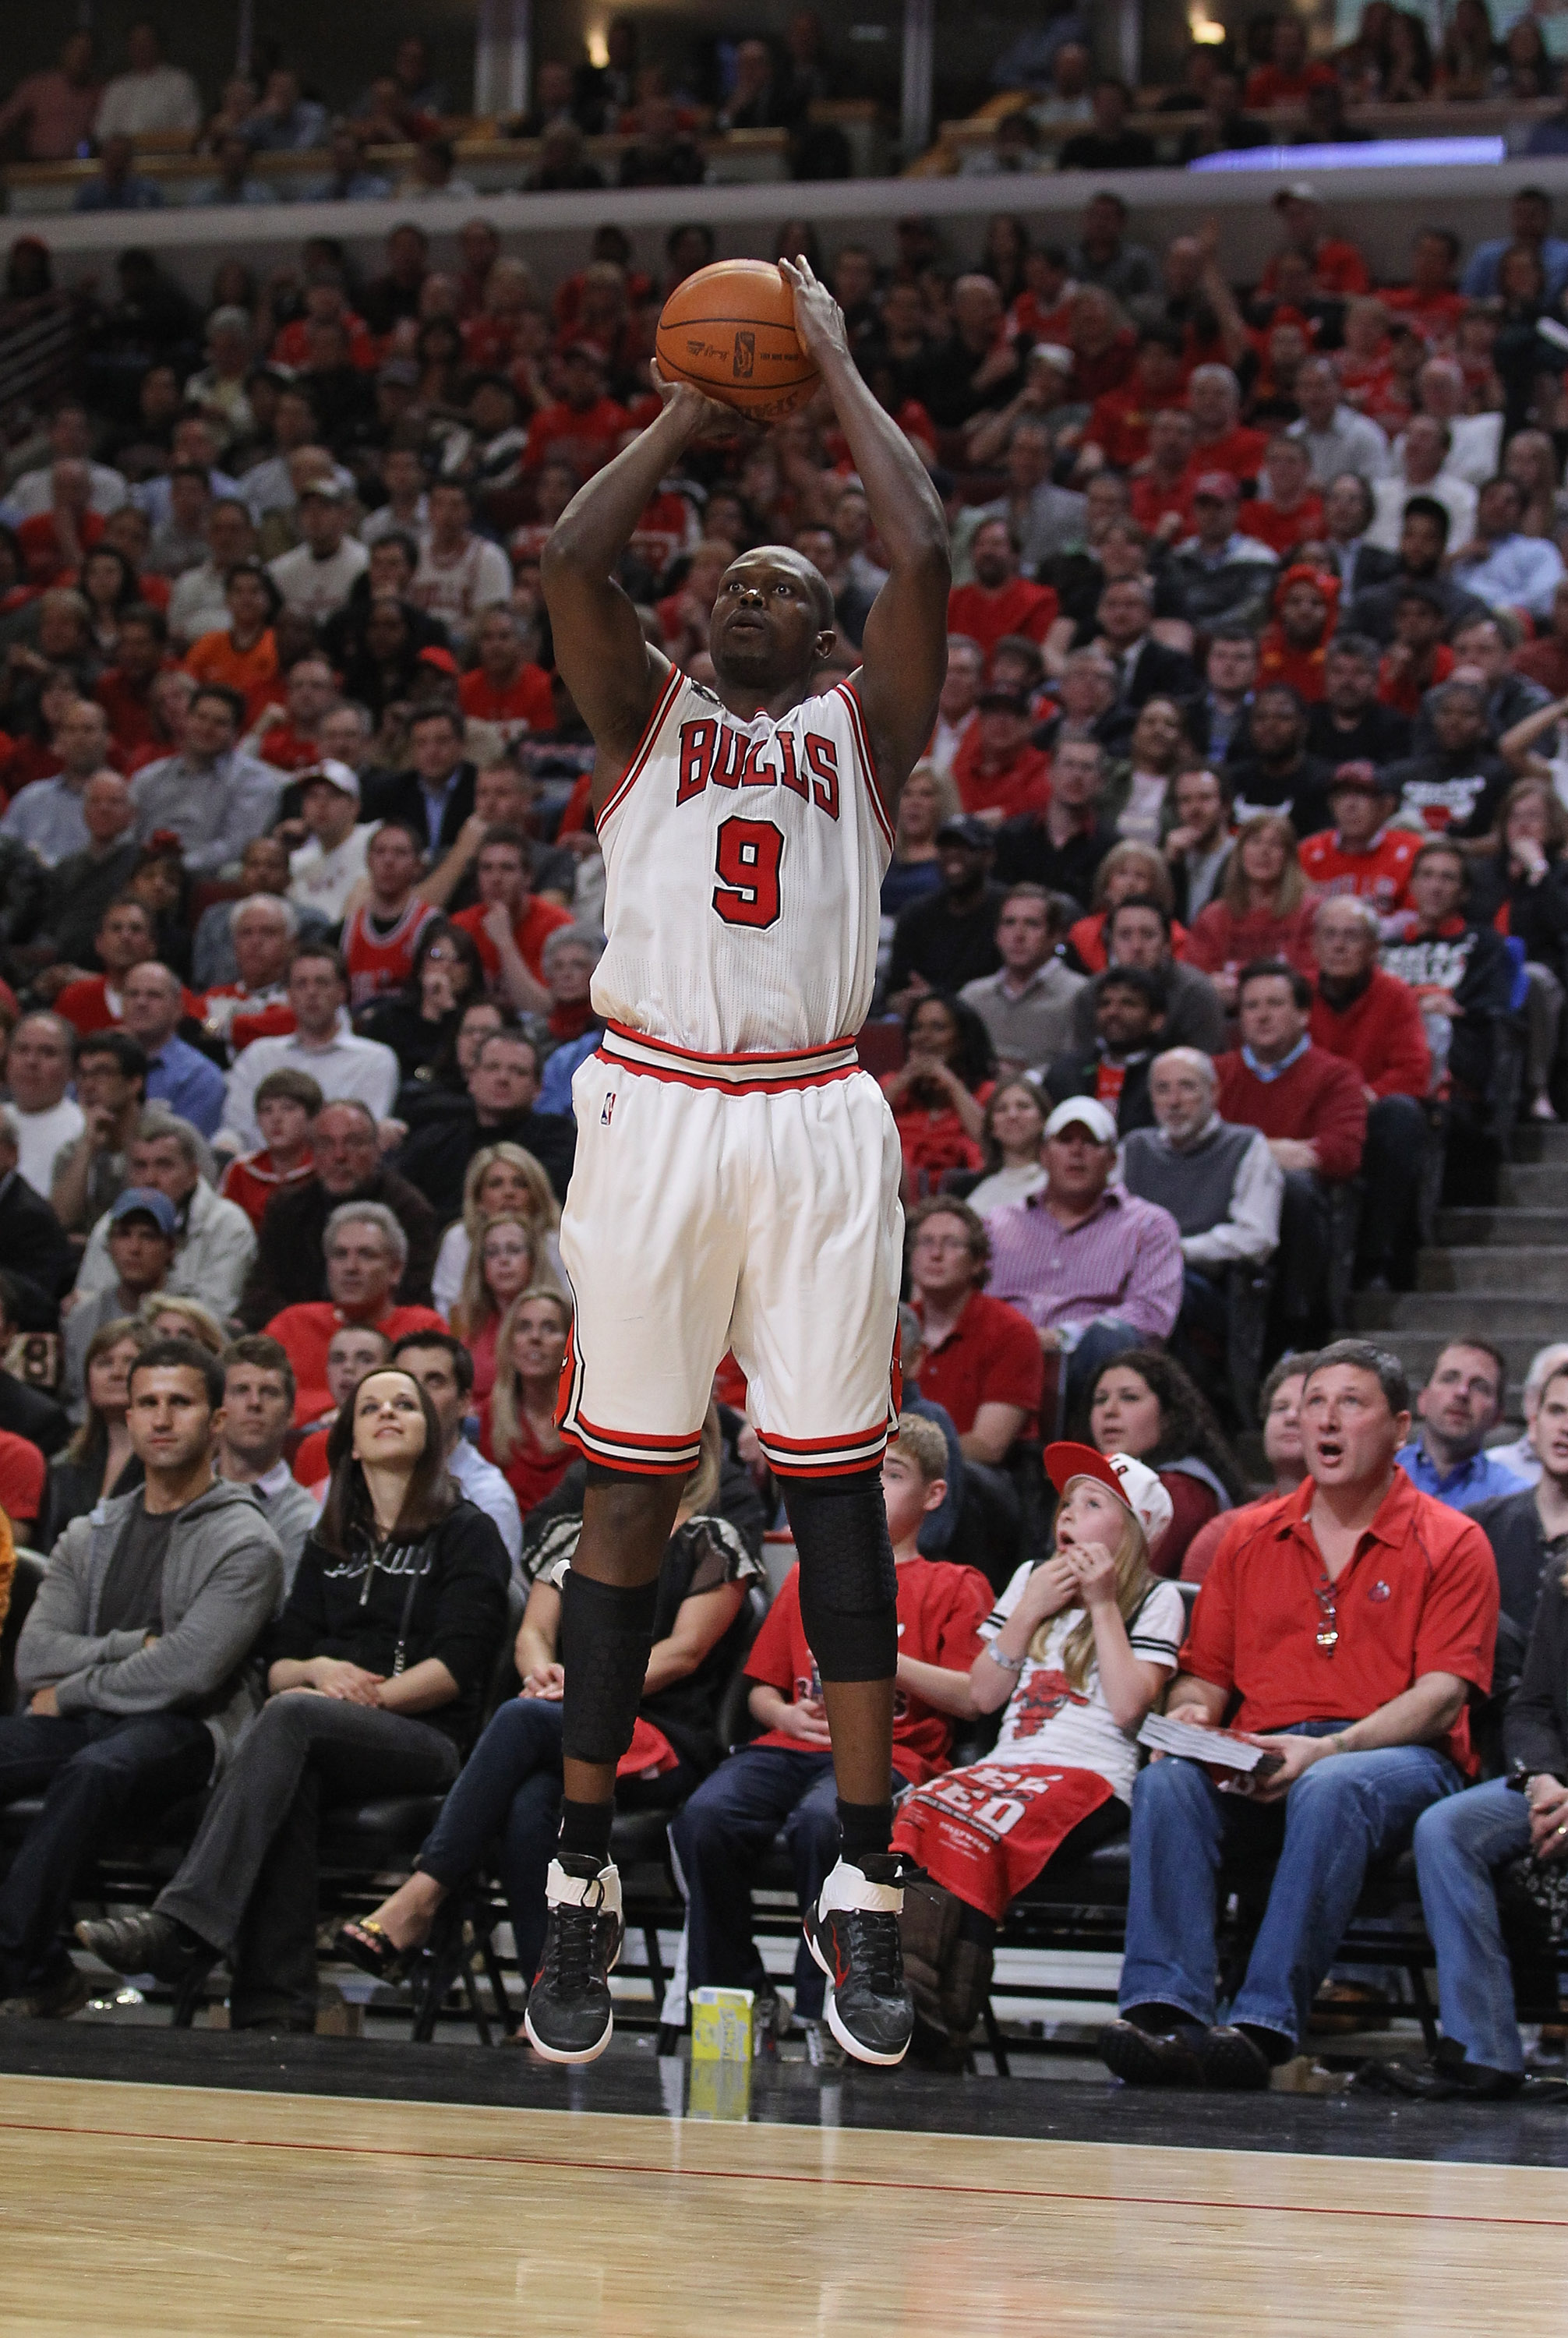 CHICAGO, IL - APRIL 26: Loul Deng #9 of the Chicago Bulls shoot a three-point shot against the Indiana Pacers in Game Five of the Eastern Conference Quarterfinals in the 2011 NBA Playoffs at the United Center on April 26, 2011 in Chicago, Illinois. The Bu